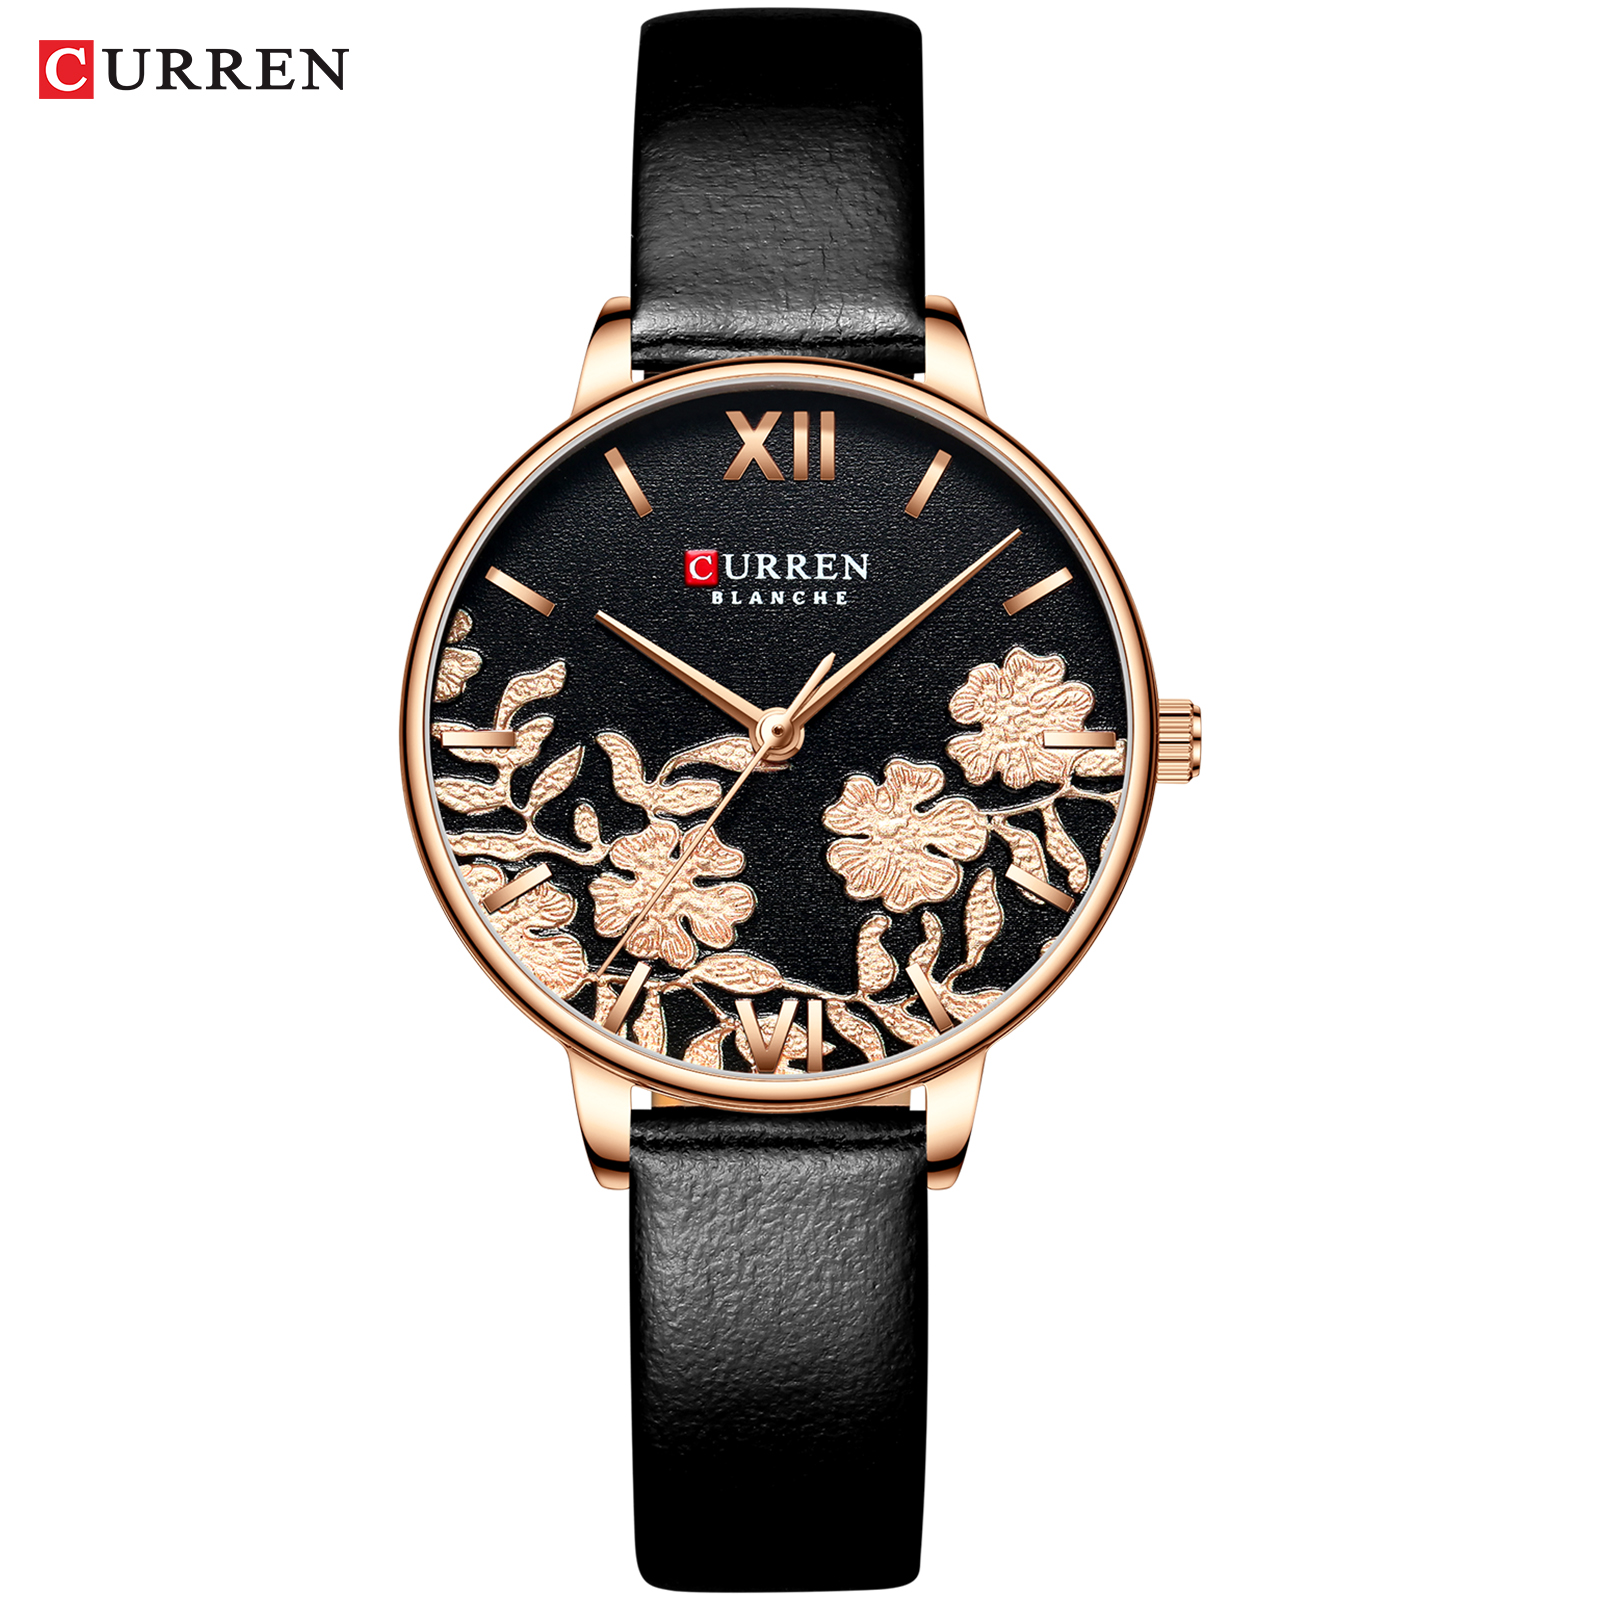 Image 2 - CURREN Watch Women Exquisite Floral Design Watches Fashion Casual Quartz Lady Watch Women's Waterproof Female Watches-in Women's Watches from Watches